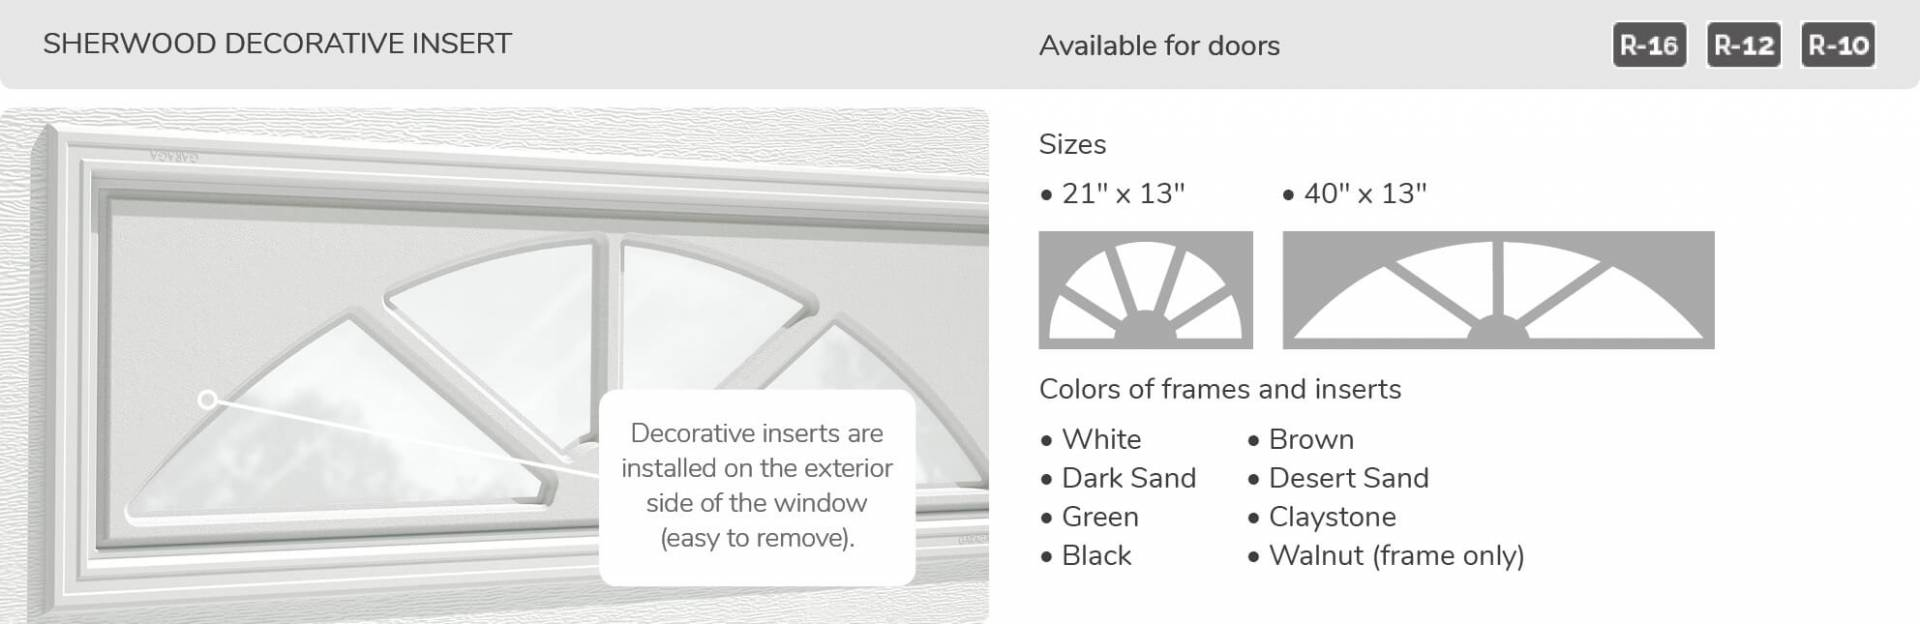 Sherwood Decorative Insert, 21' x 13' and 40' x 13', available for doors R-16, R-12 and R-10